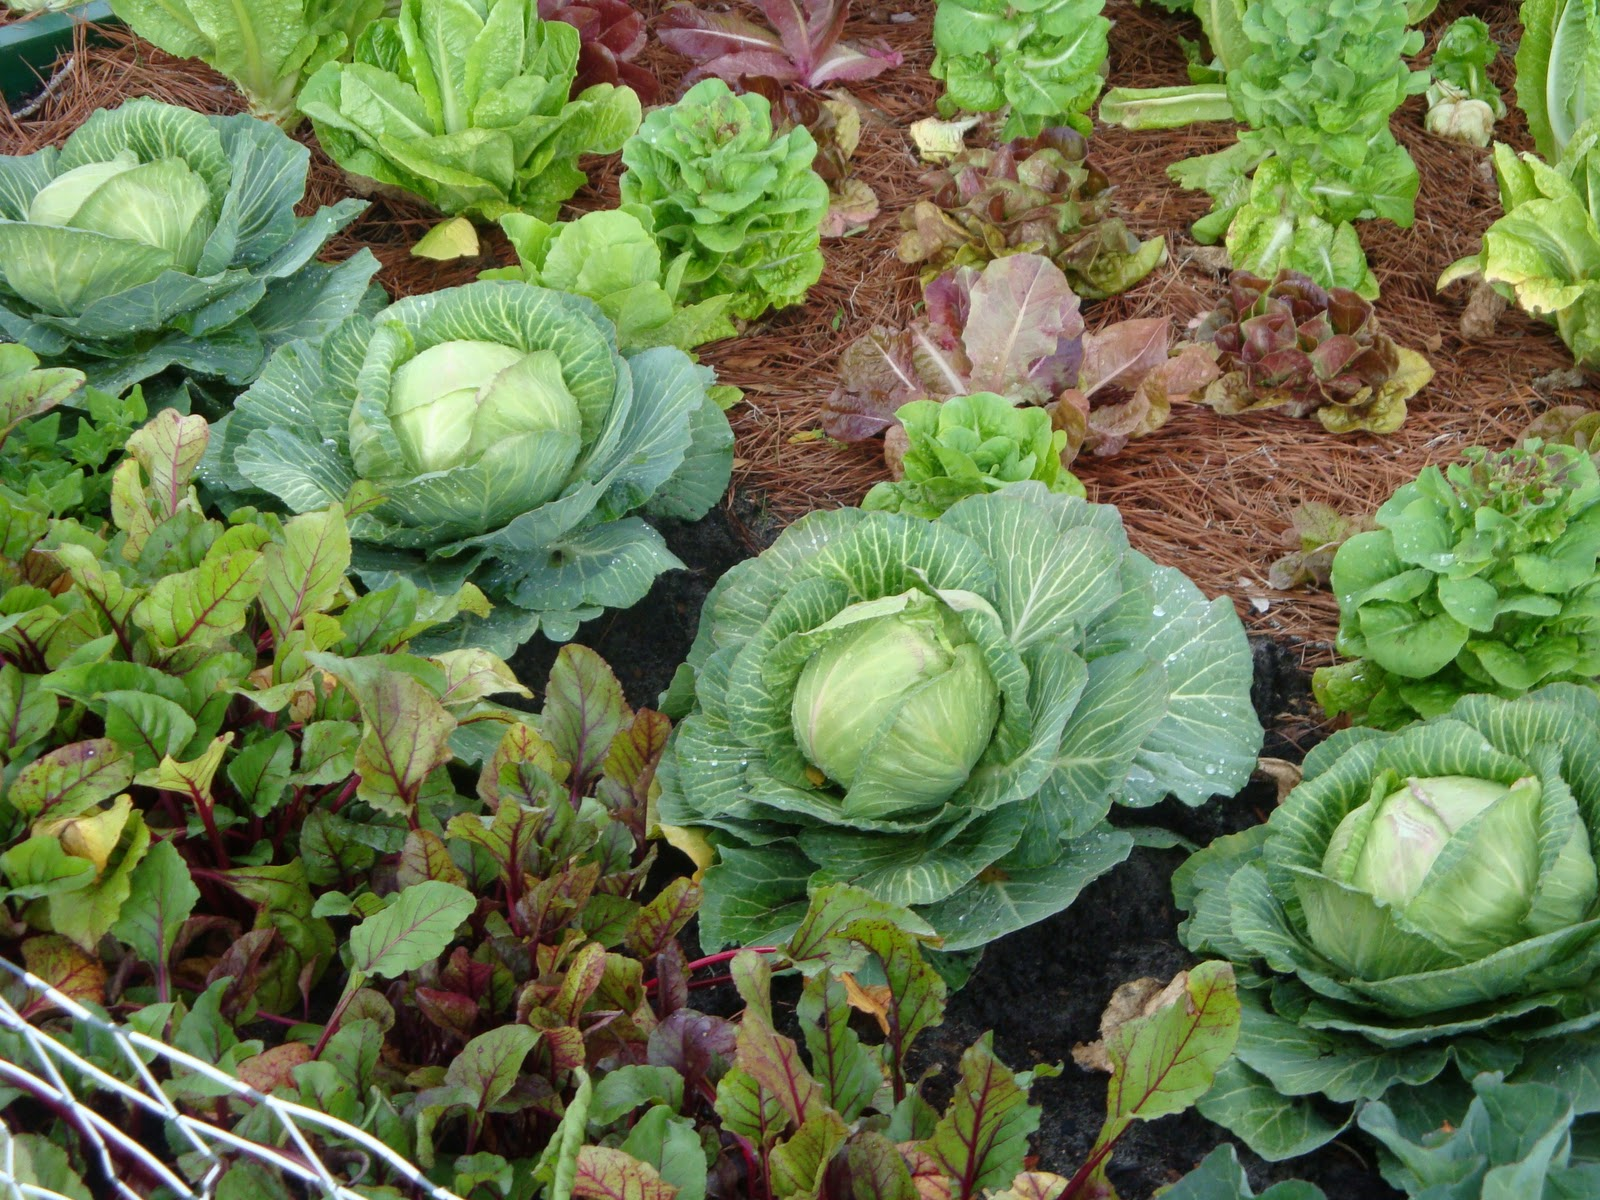 Small vegetable garden plans ideas - Planning An Urban Vegetable Garden 100th Seed